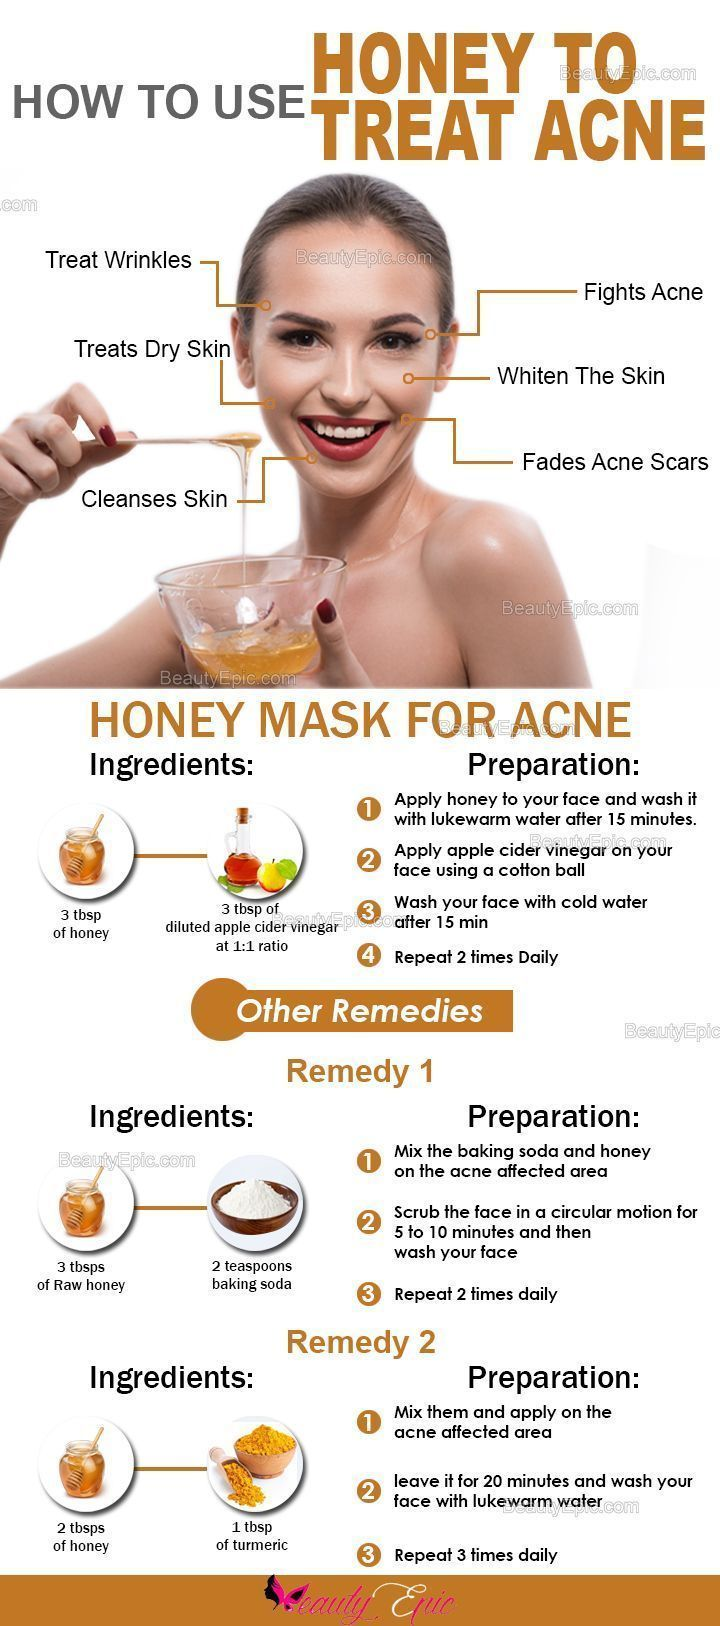 How to use Honey to Treat Acne